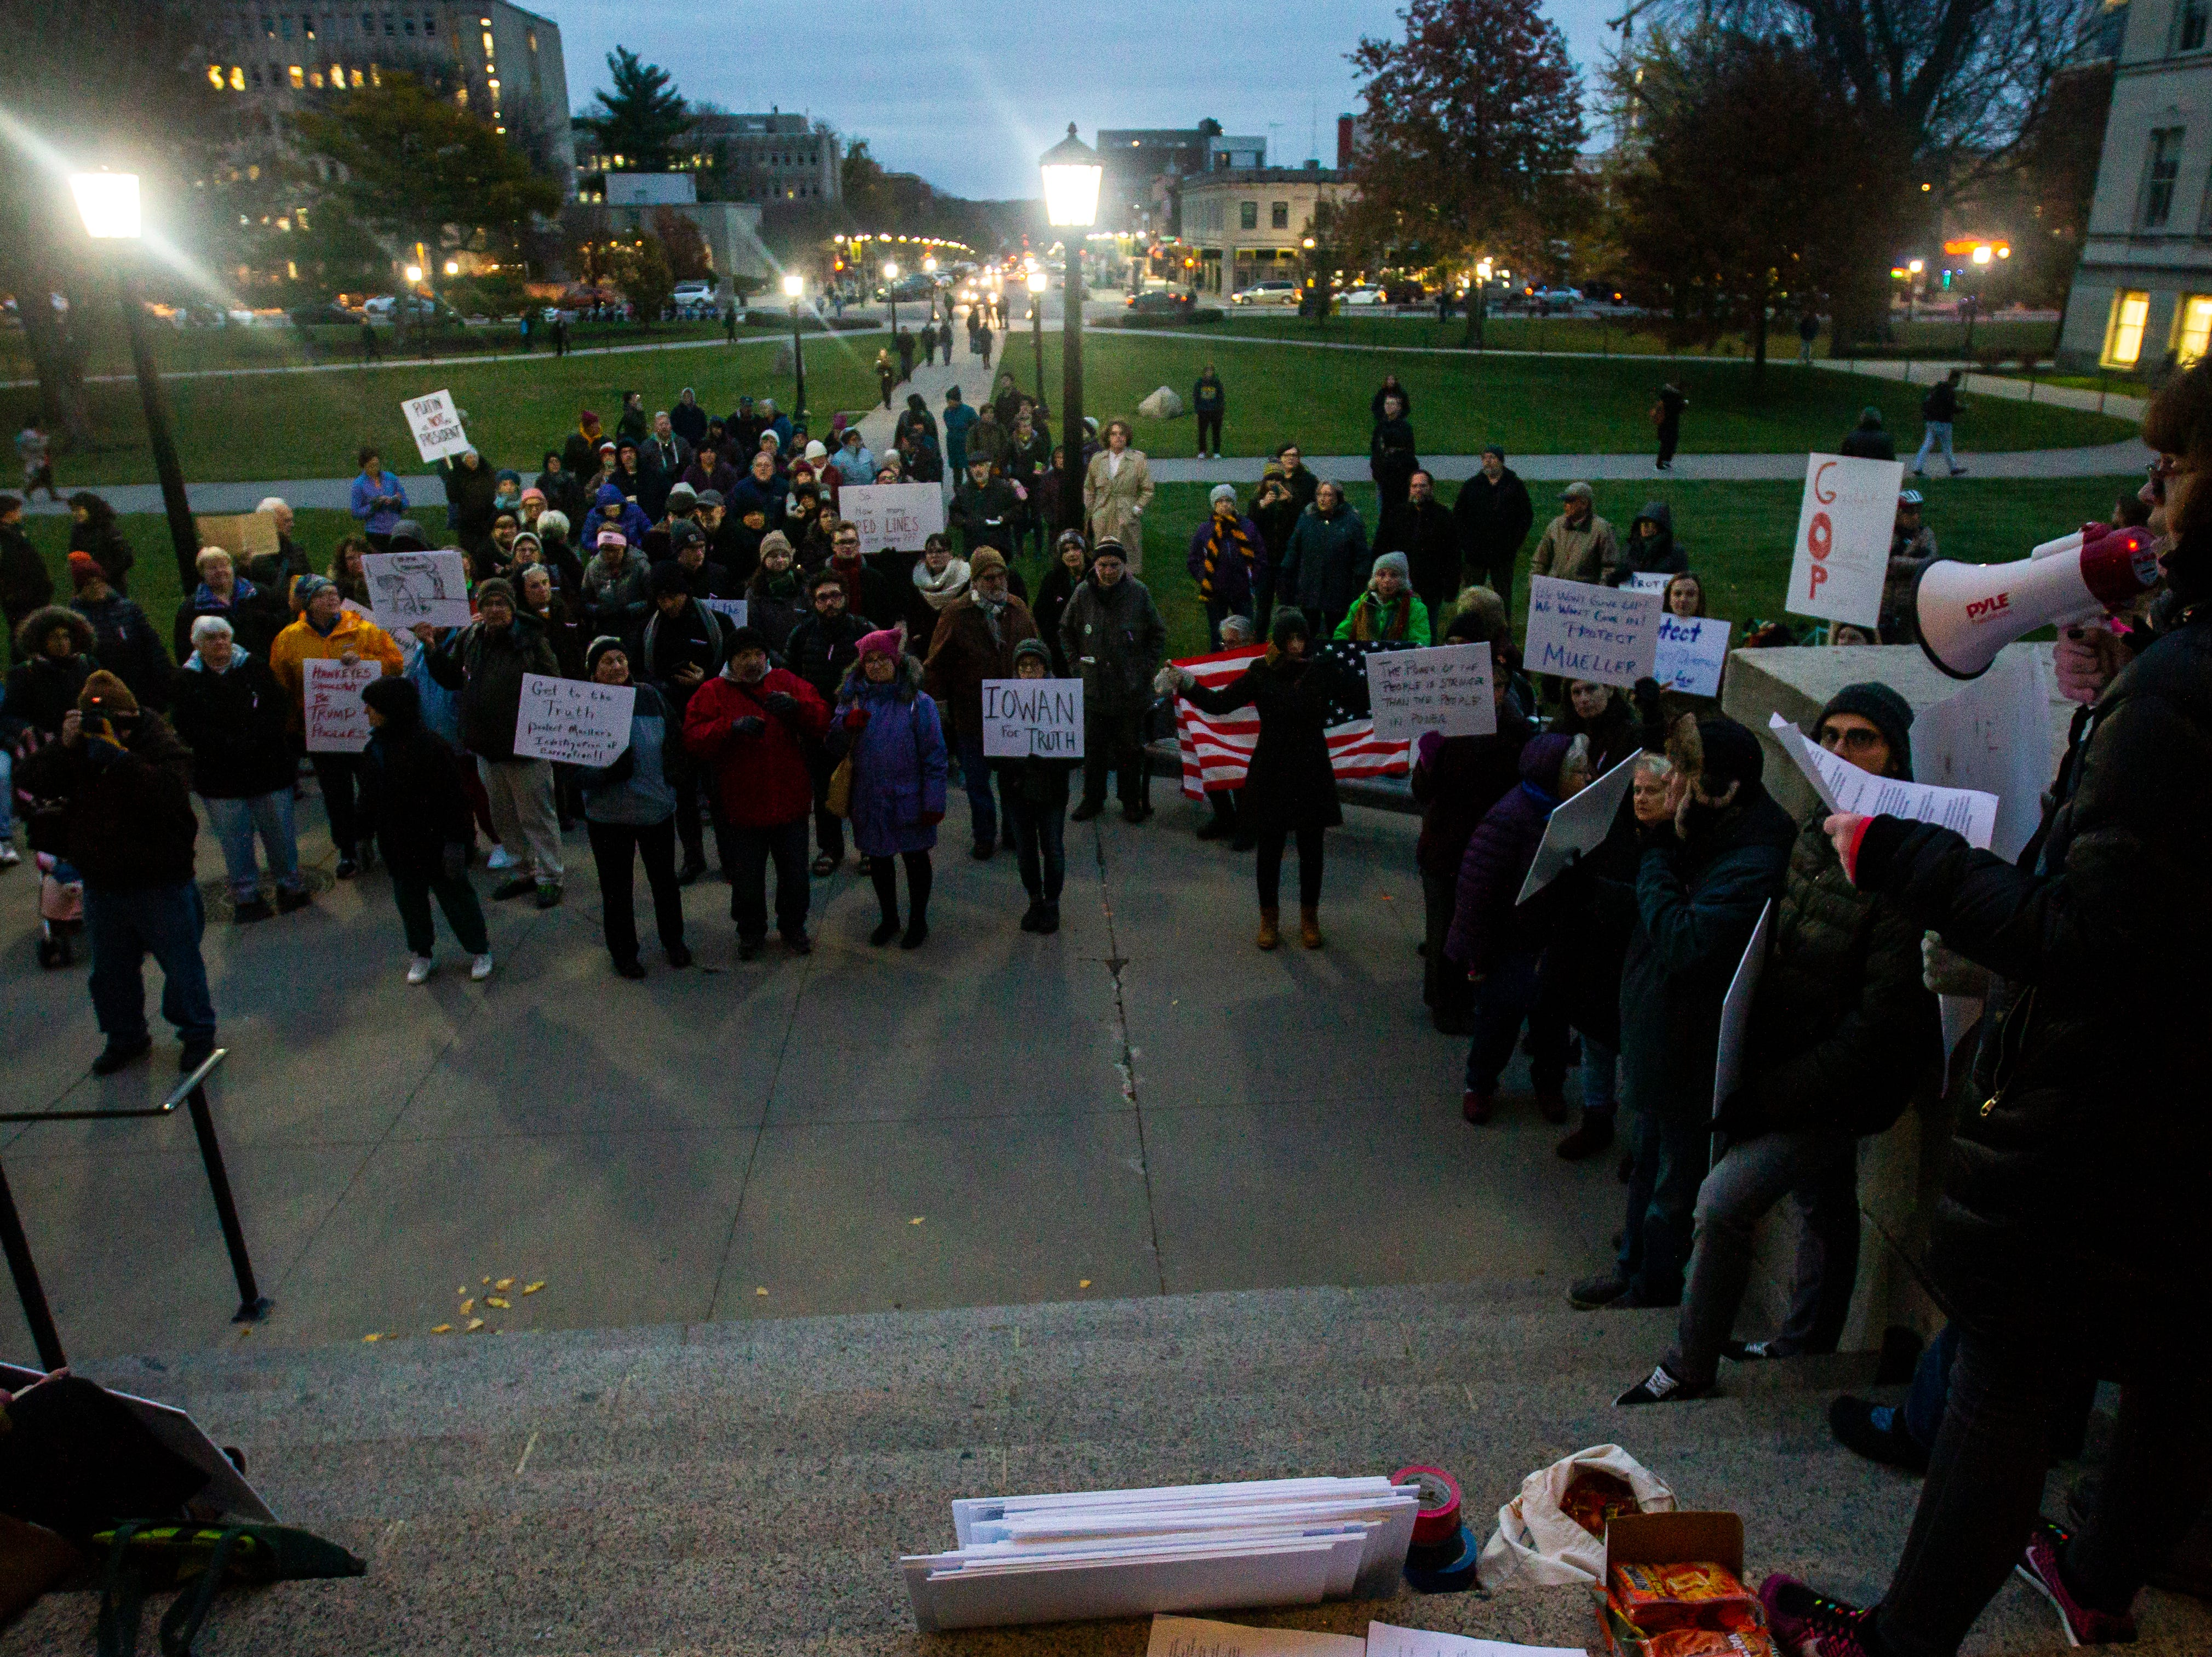 Sara Miller speaks to community members during a protest over the appointment of Matt Whitaker as acting U.S. Attorney General on Thursday, Nov. 8, 2018, on east side of the Pentacrest in Iowa City.